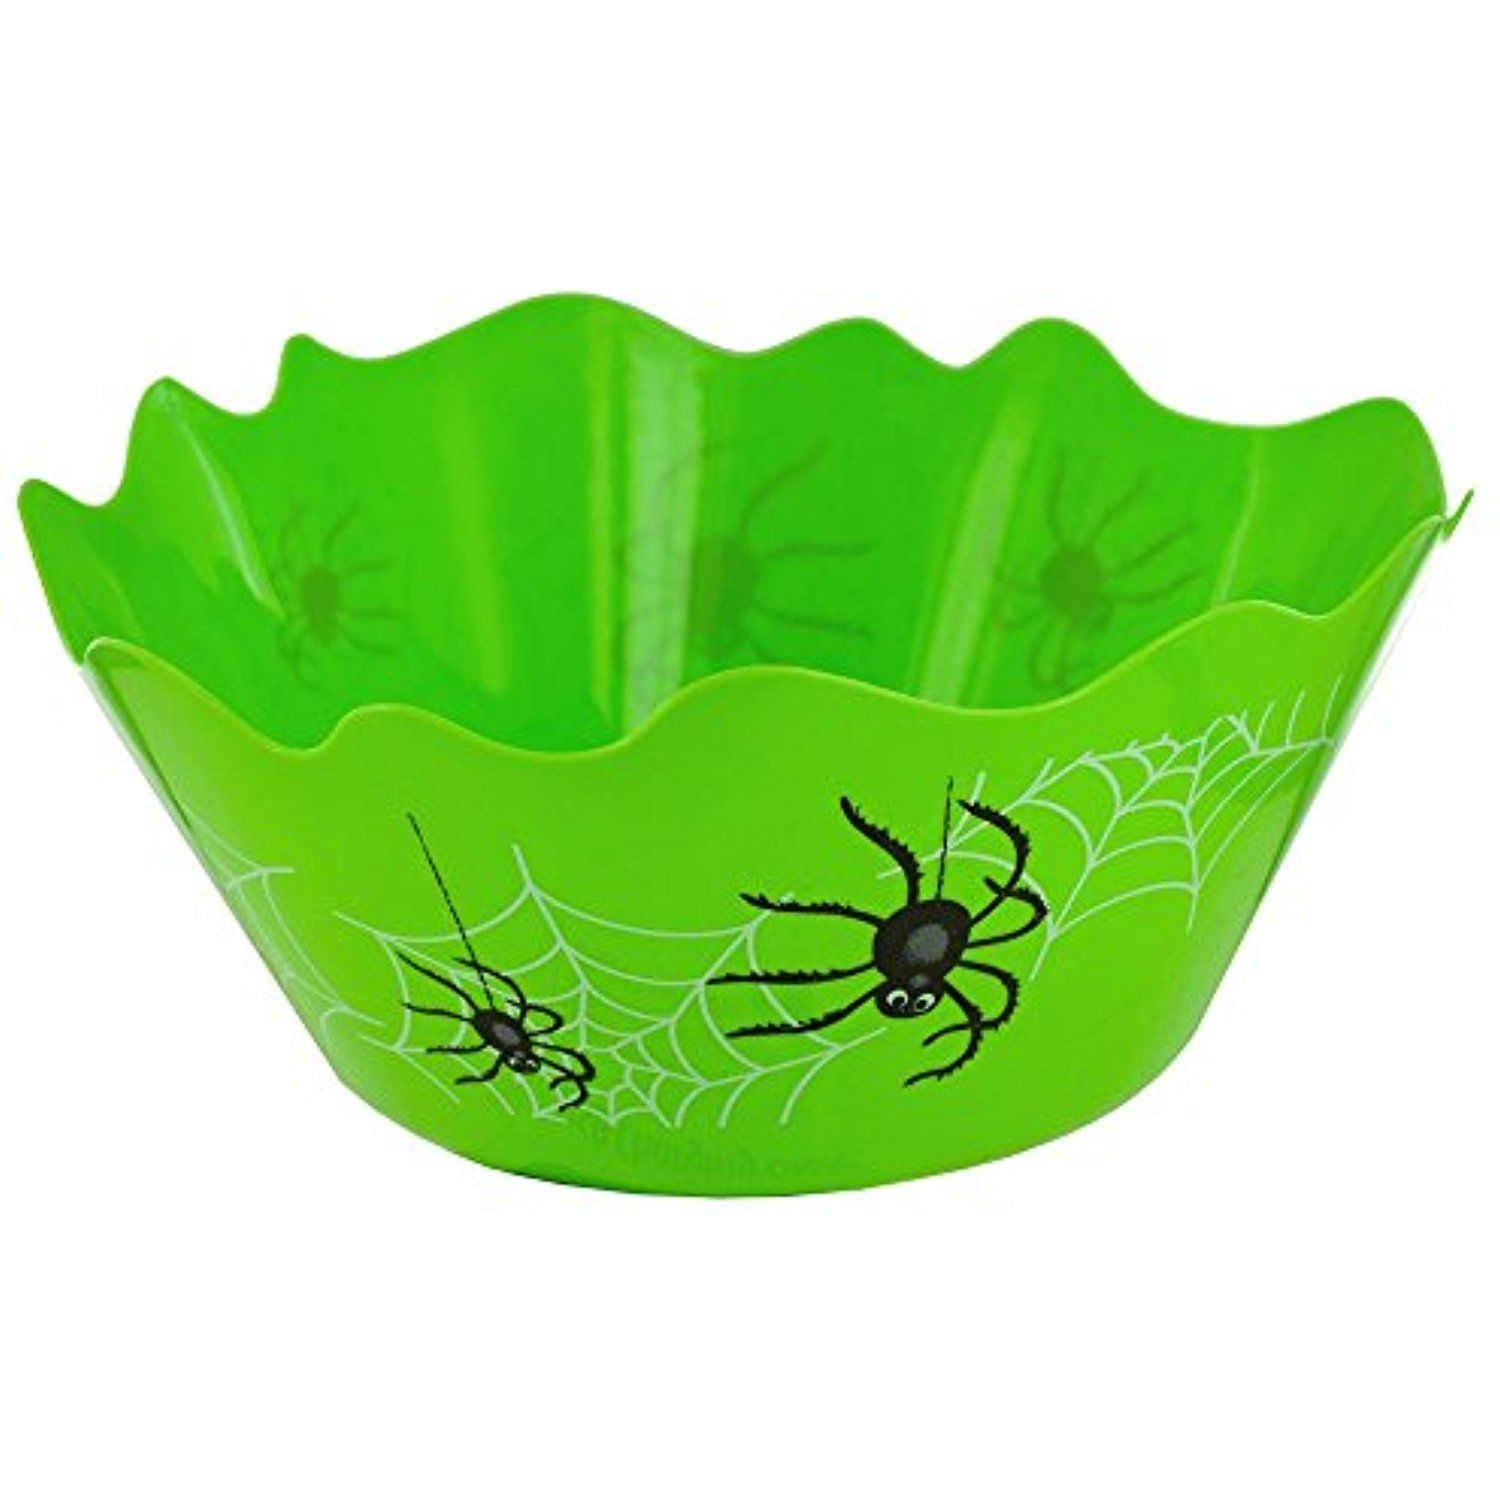 Kole Imports FB377 Large Halloween Spiders Candy Bowl